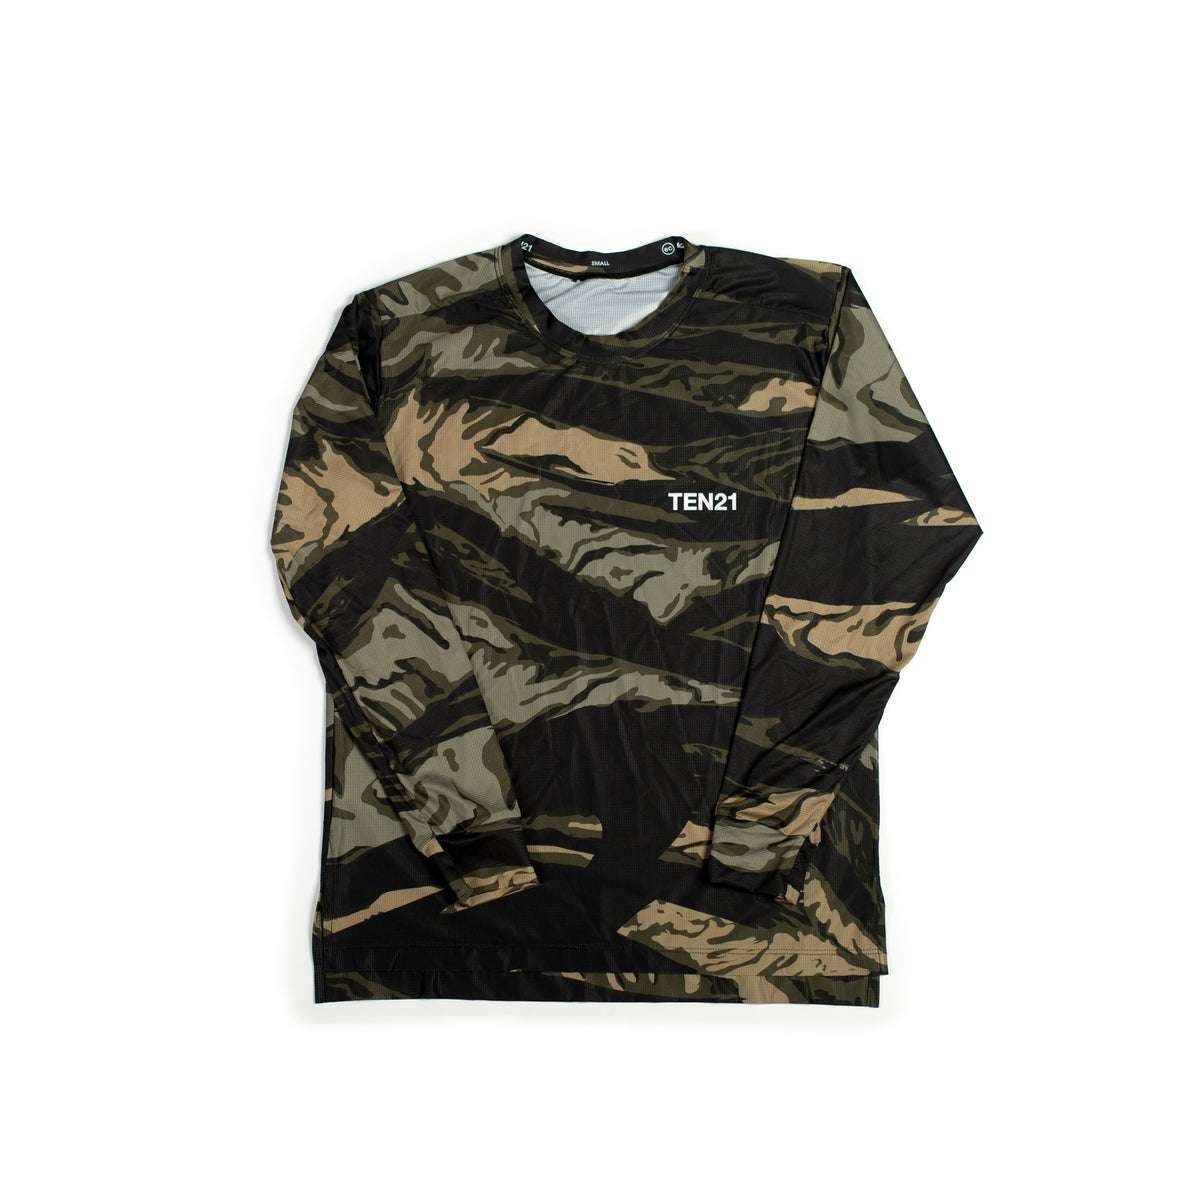 TEN21 - VIRGIL LONG SLEEVE TECH TEE - GREEN CAMO